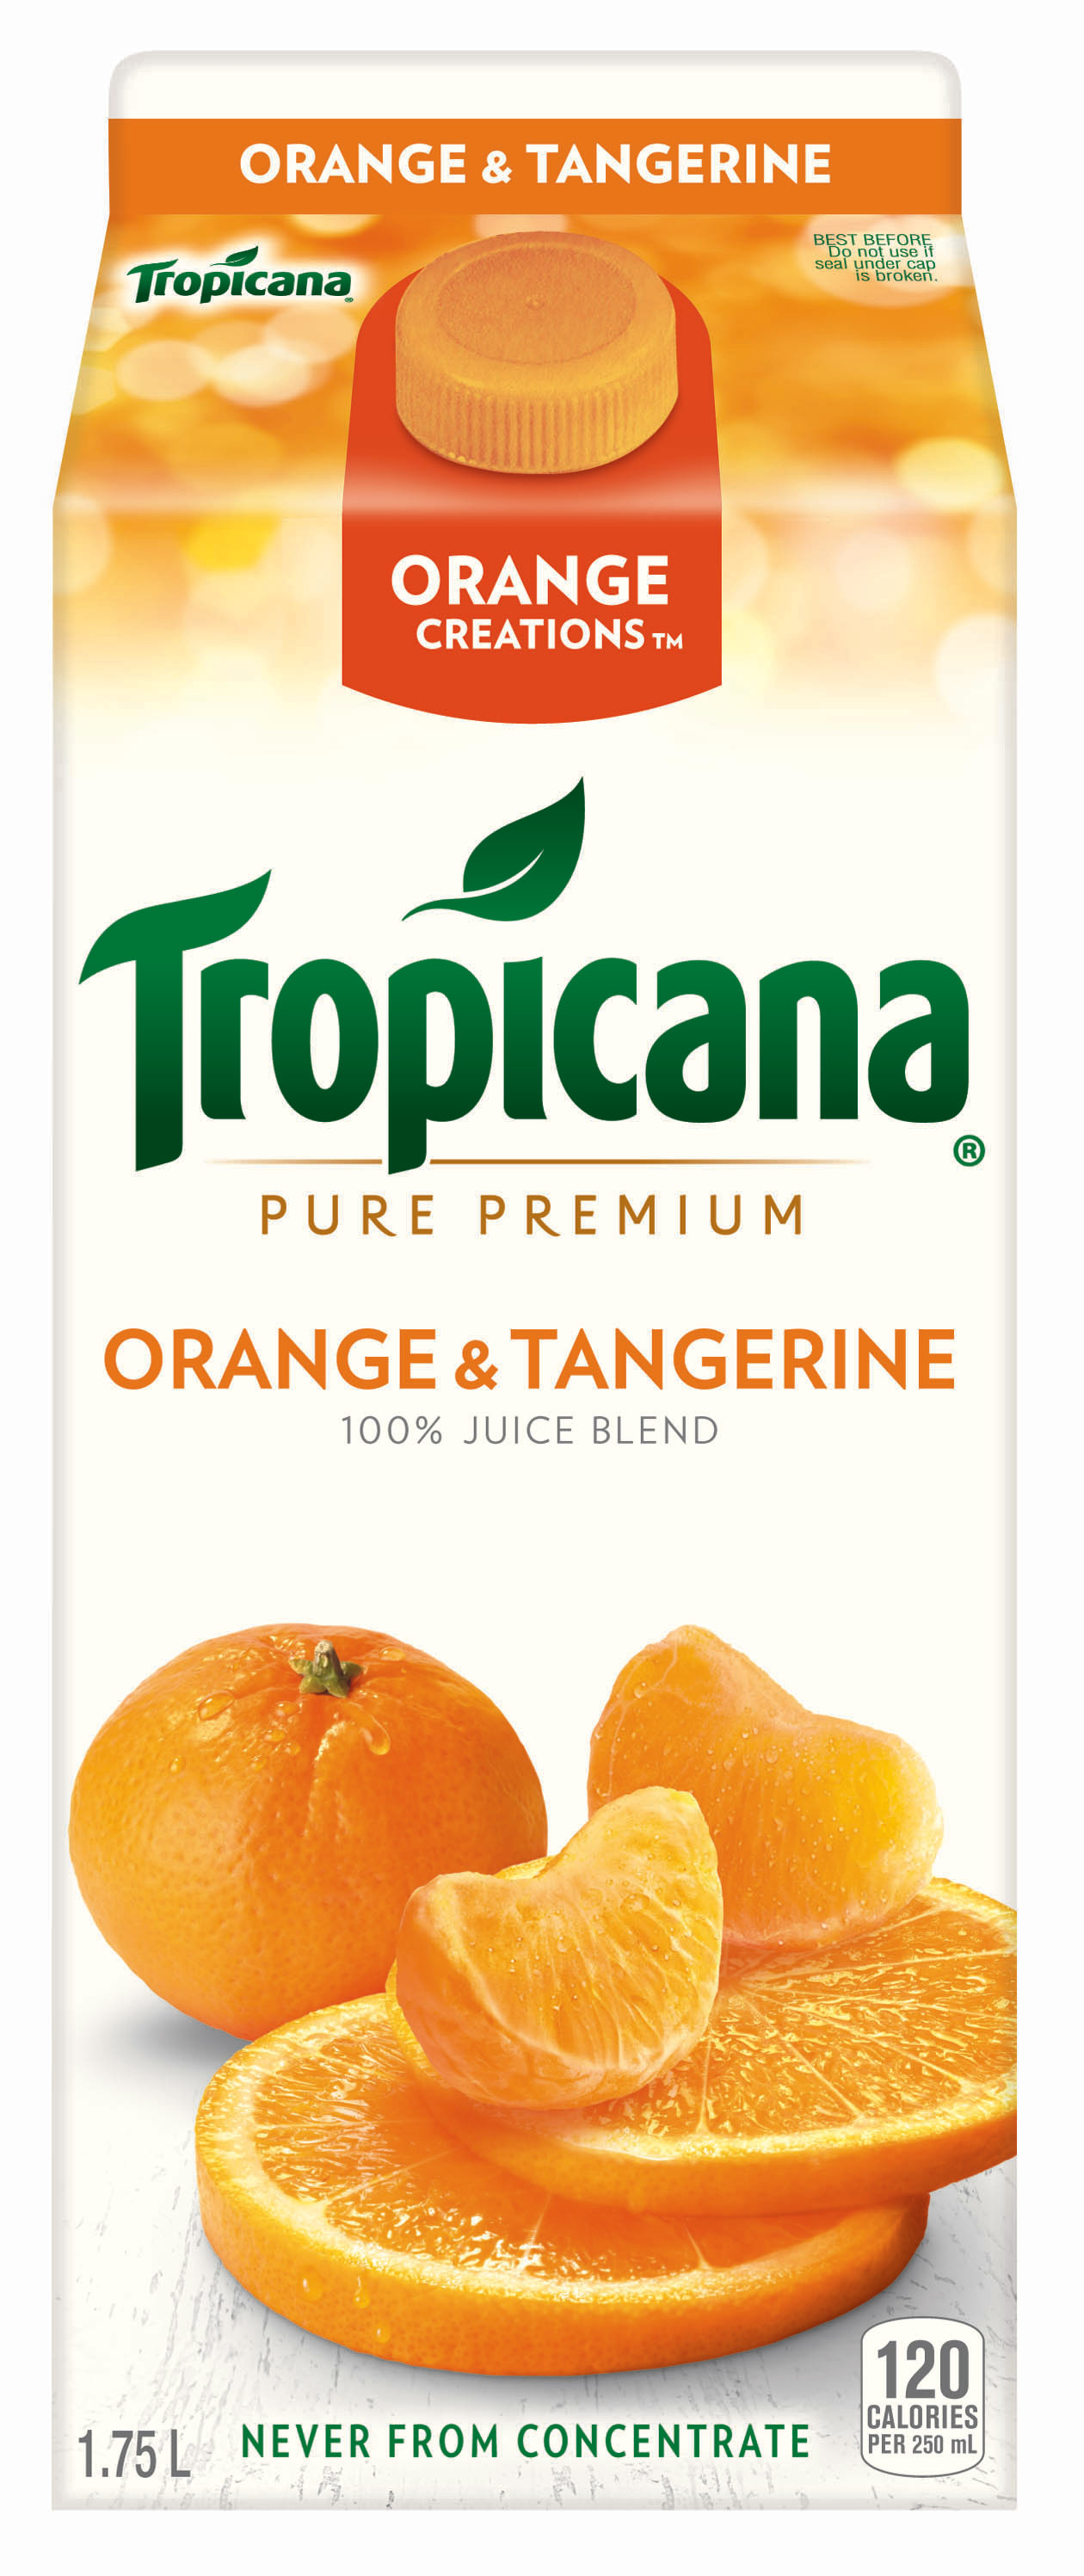 tropicana® orange creations™ – orange & tangerine | tropicana.ca